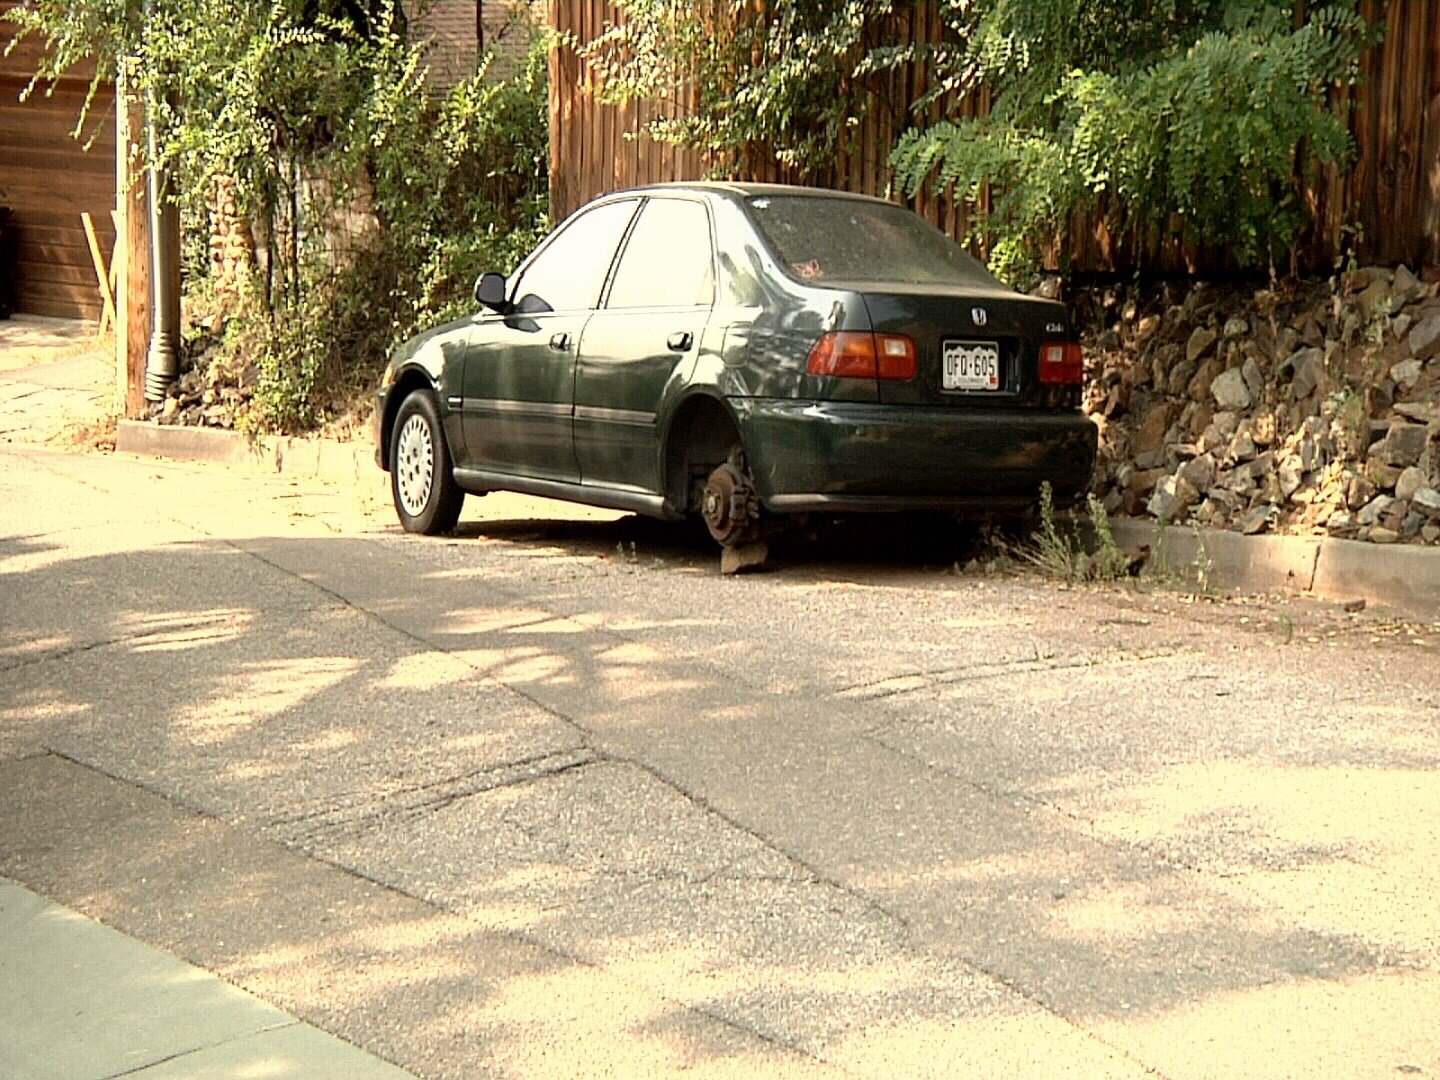 This abandoned car has been parked on Red Rock Avenue for at least three months